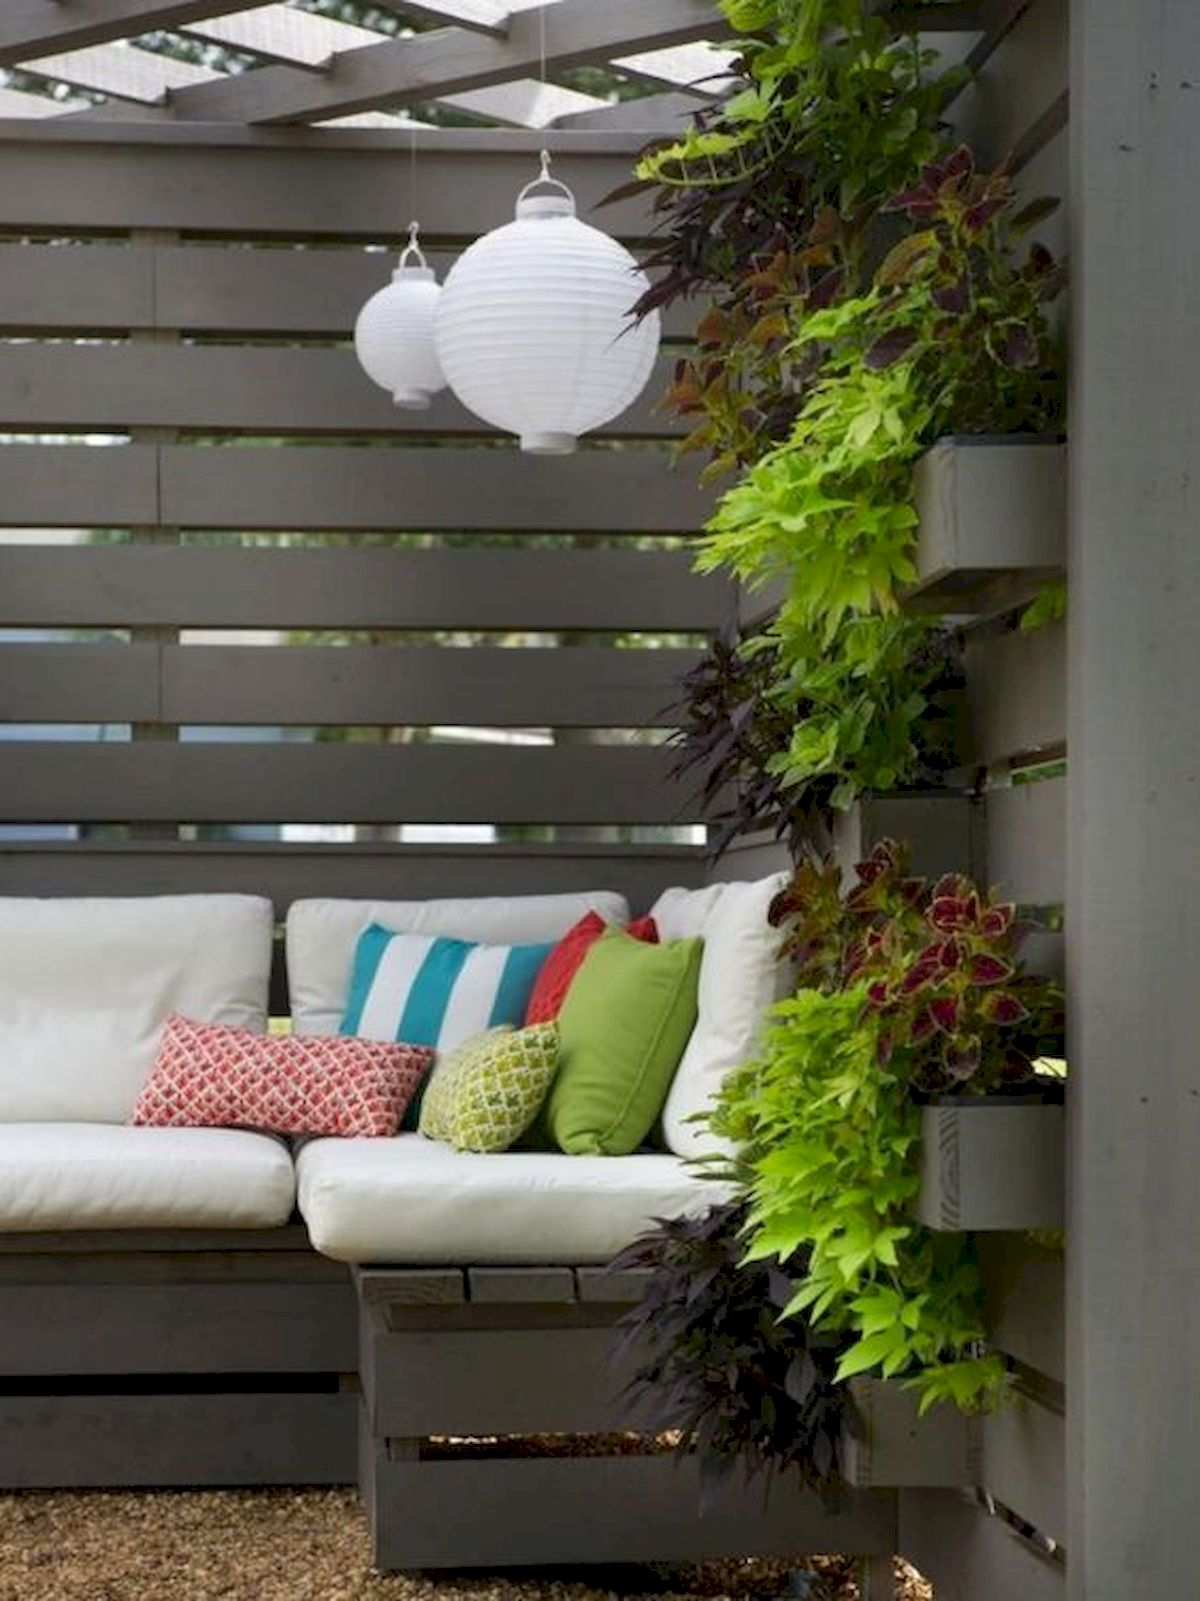 50 Awesome Modern Backyard Garden Design Ideas With Hanging Plants (42)